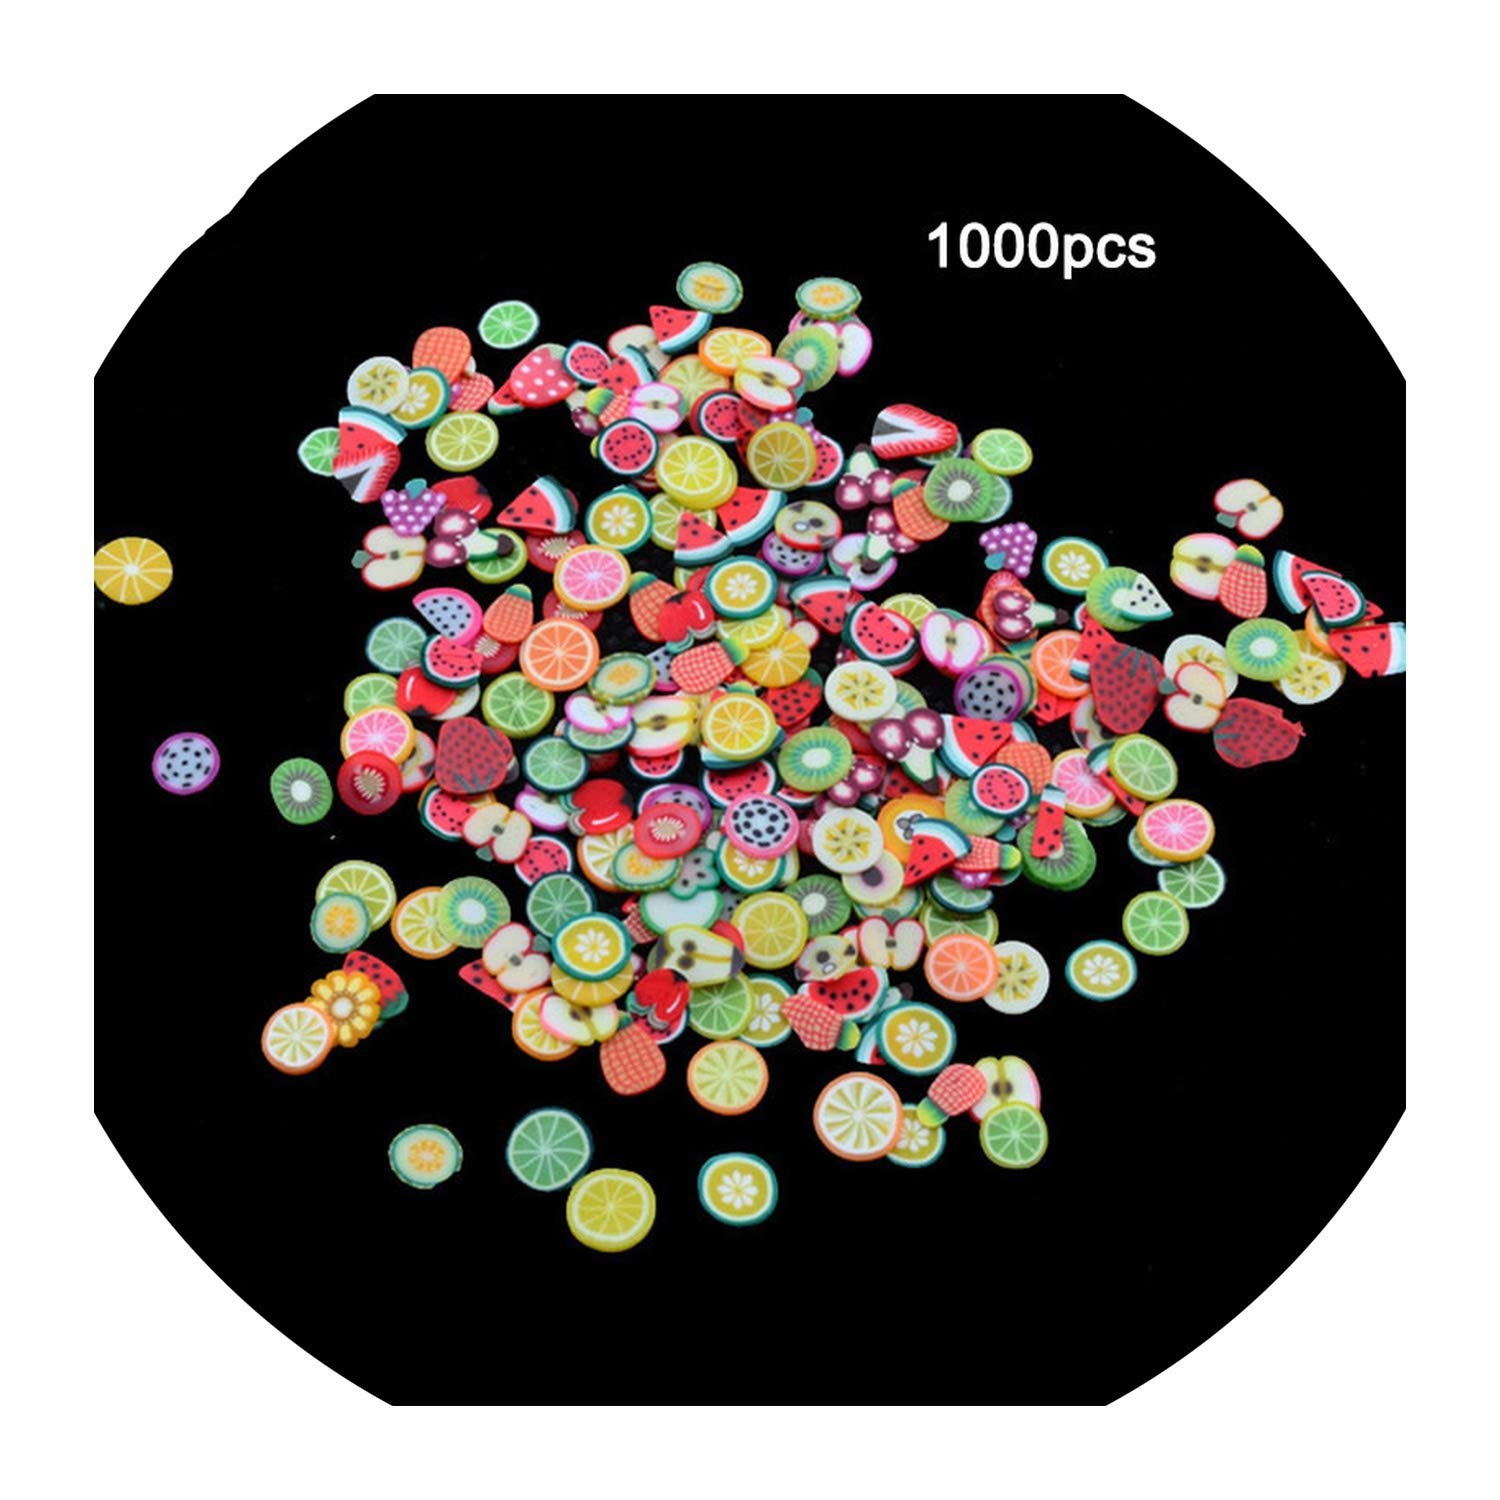 1000pcs/pack Nail Art Fruit Flowers Feather DIY Design Fimo Cane Slices Decoration Acrylic Beauty Polymer Clay Nail Sticker Tool,Fruit by vibe-body